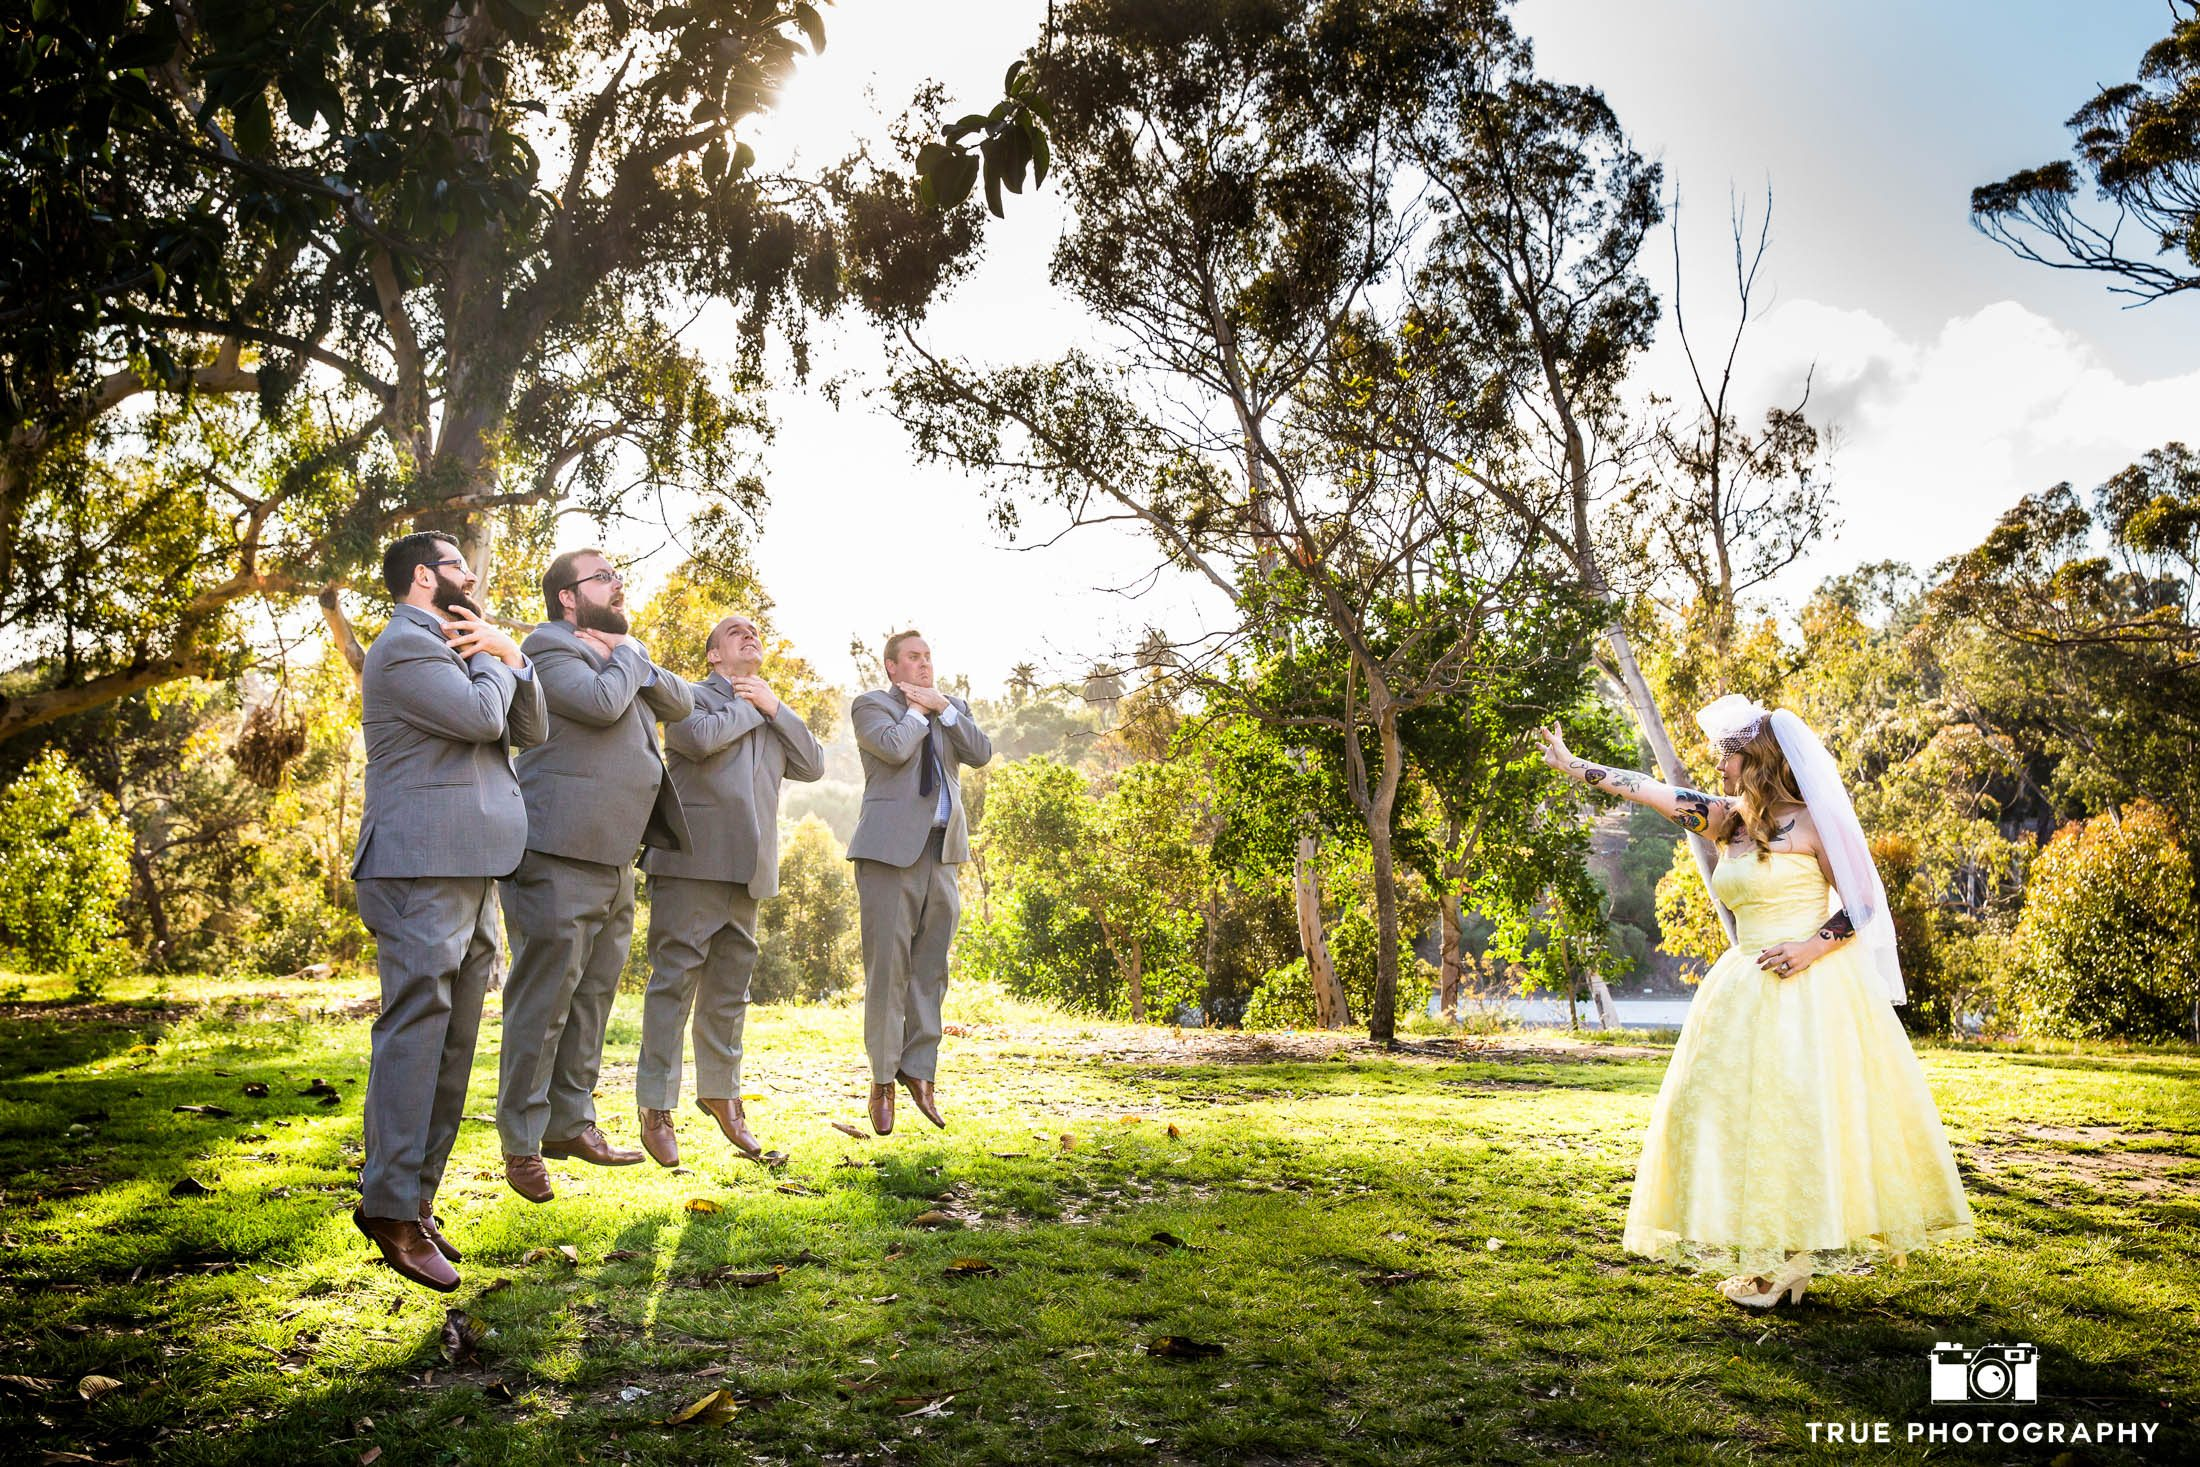 Bride in Yellow Wedding Dress uses Force on Groomsmen